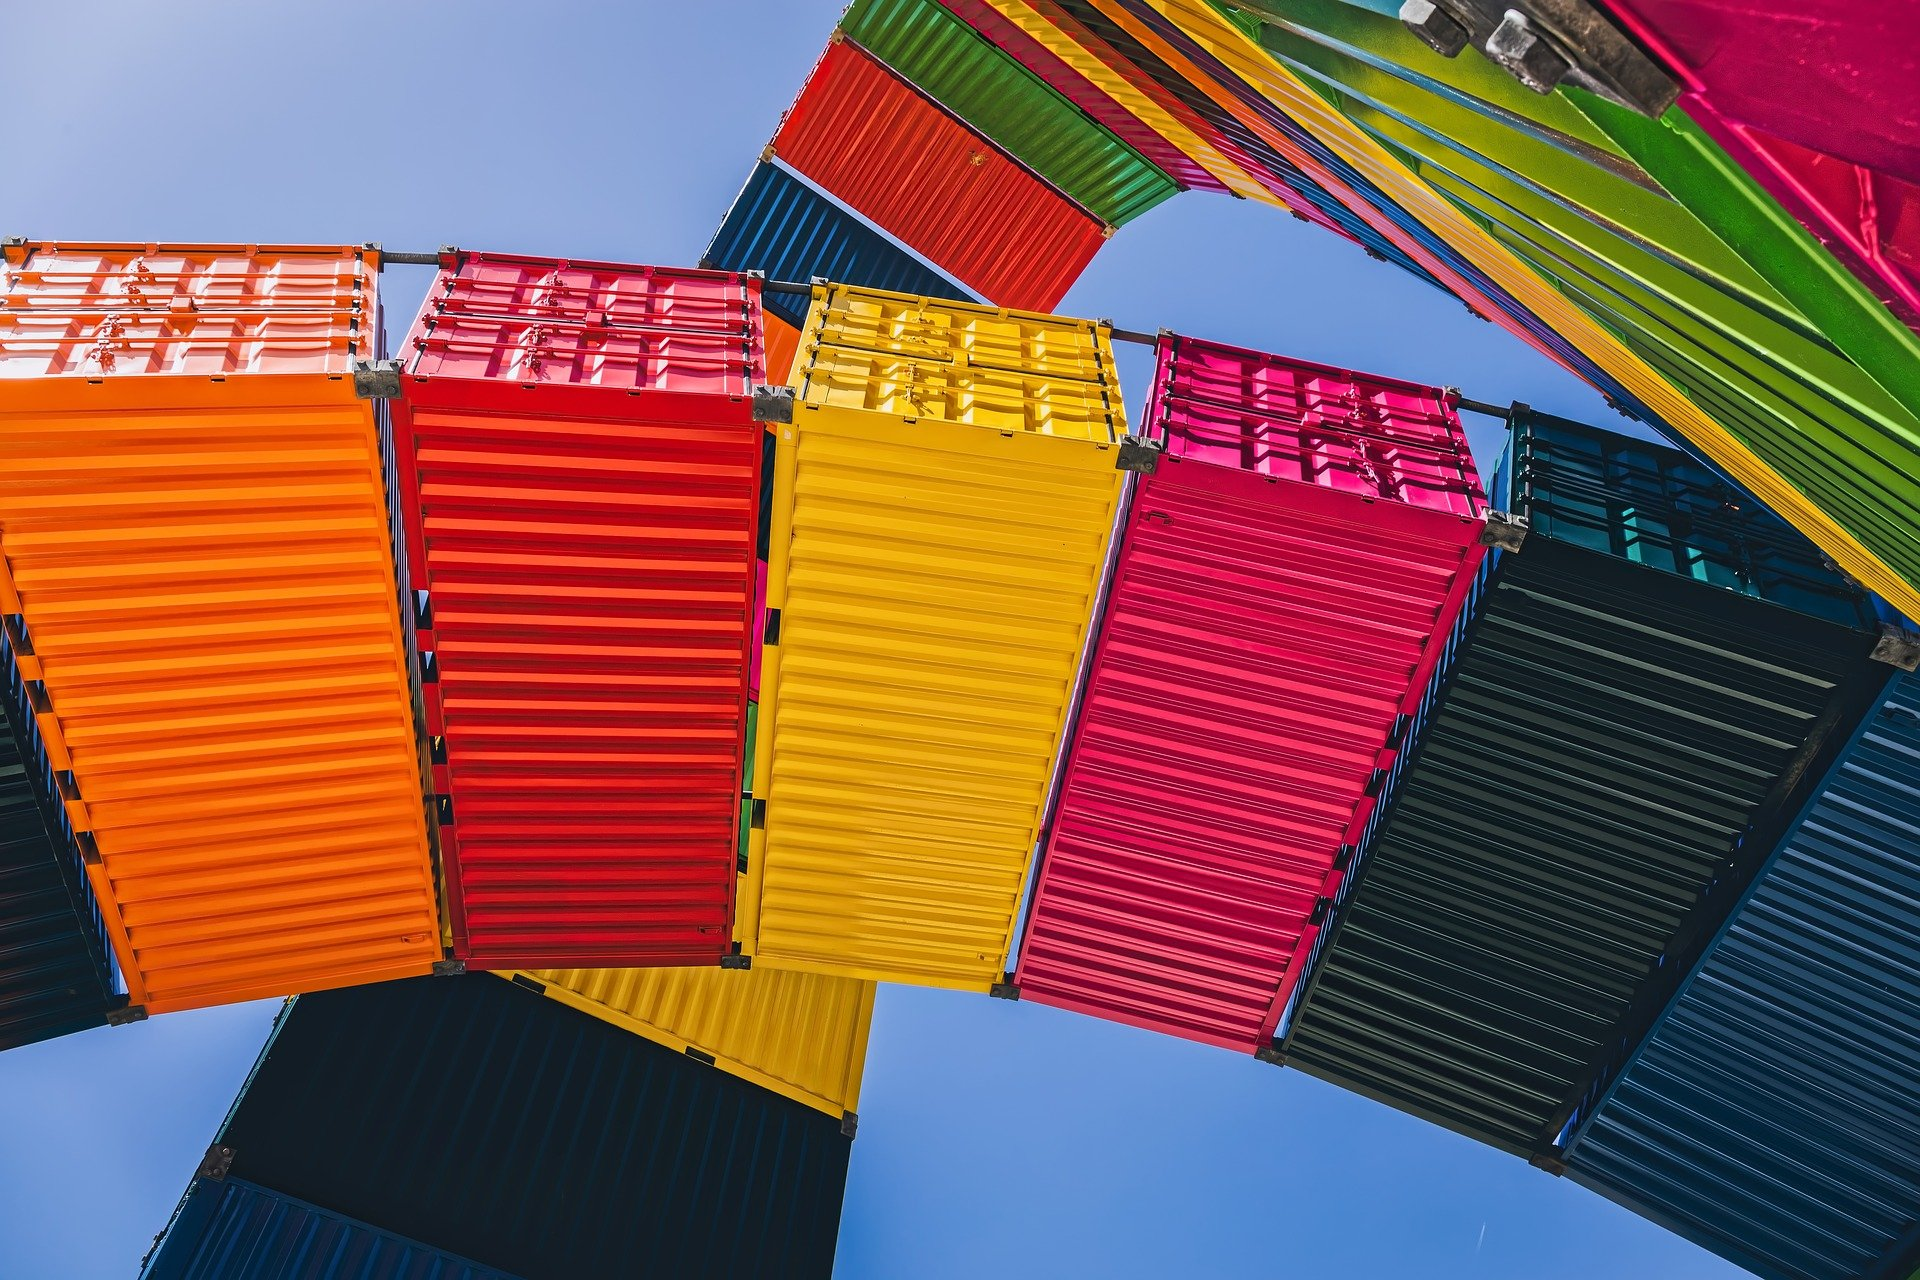 Creative Uses of Shipping Containers